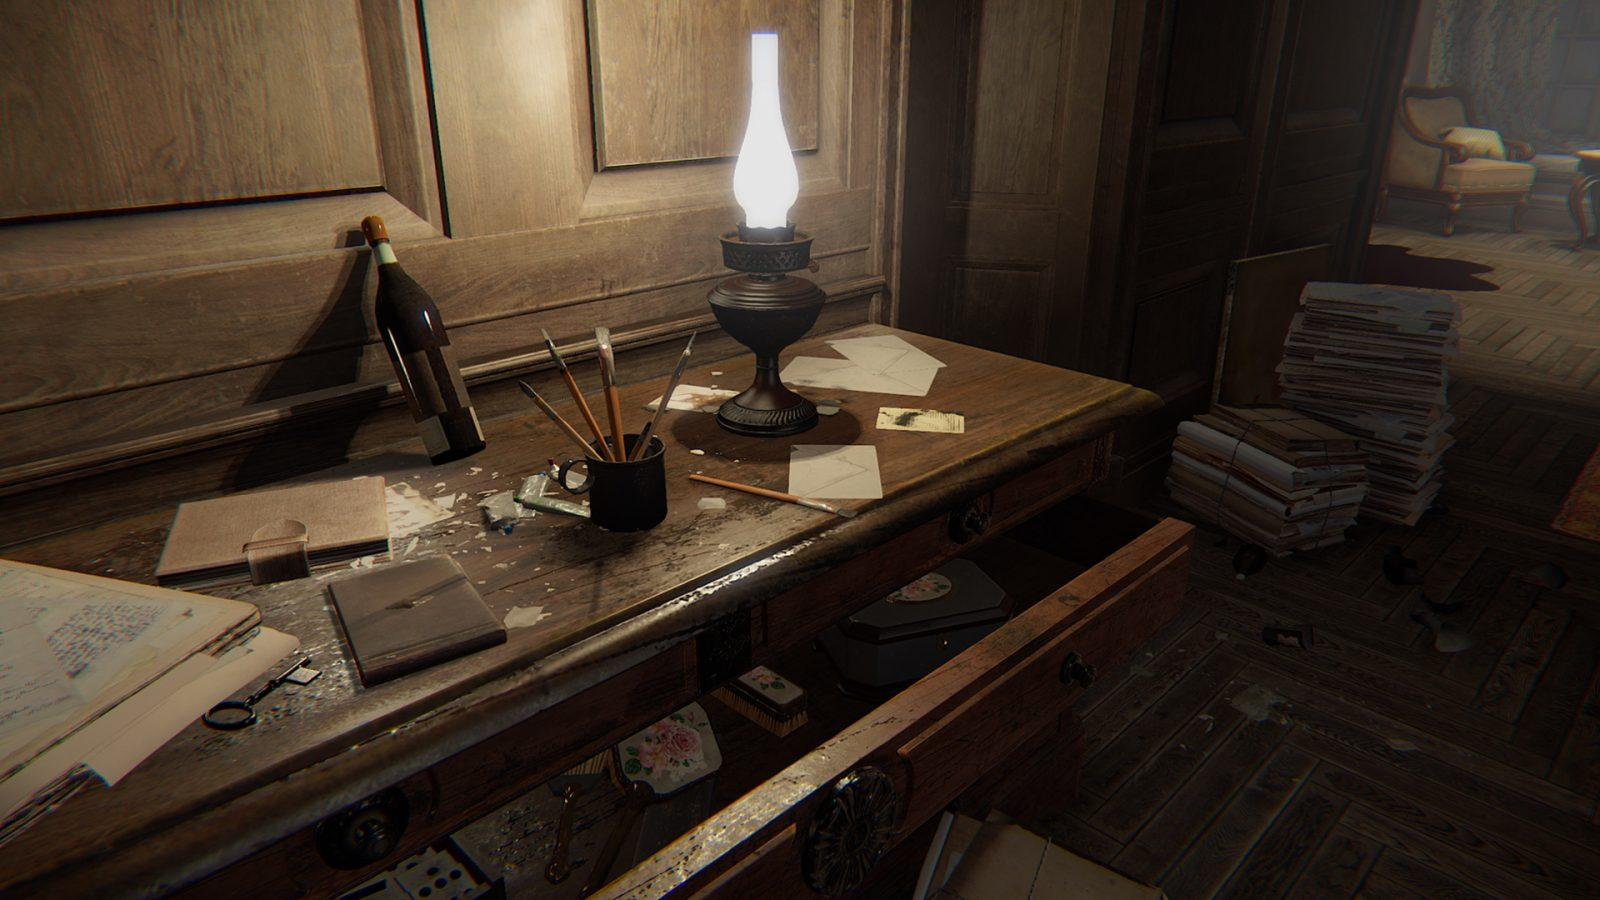 layers of fear (7)